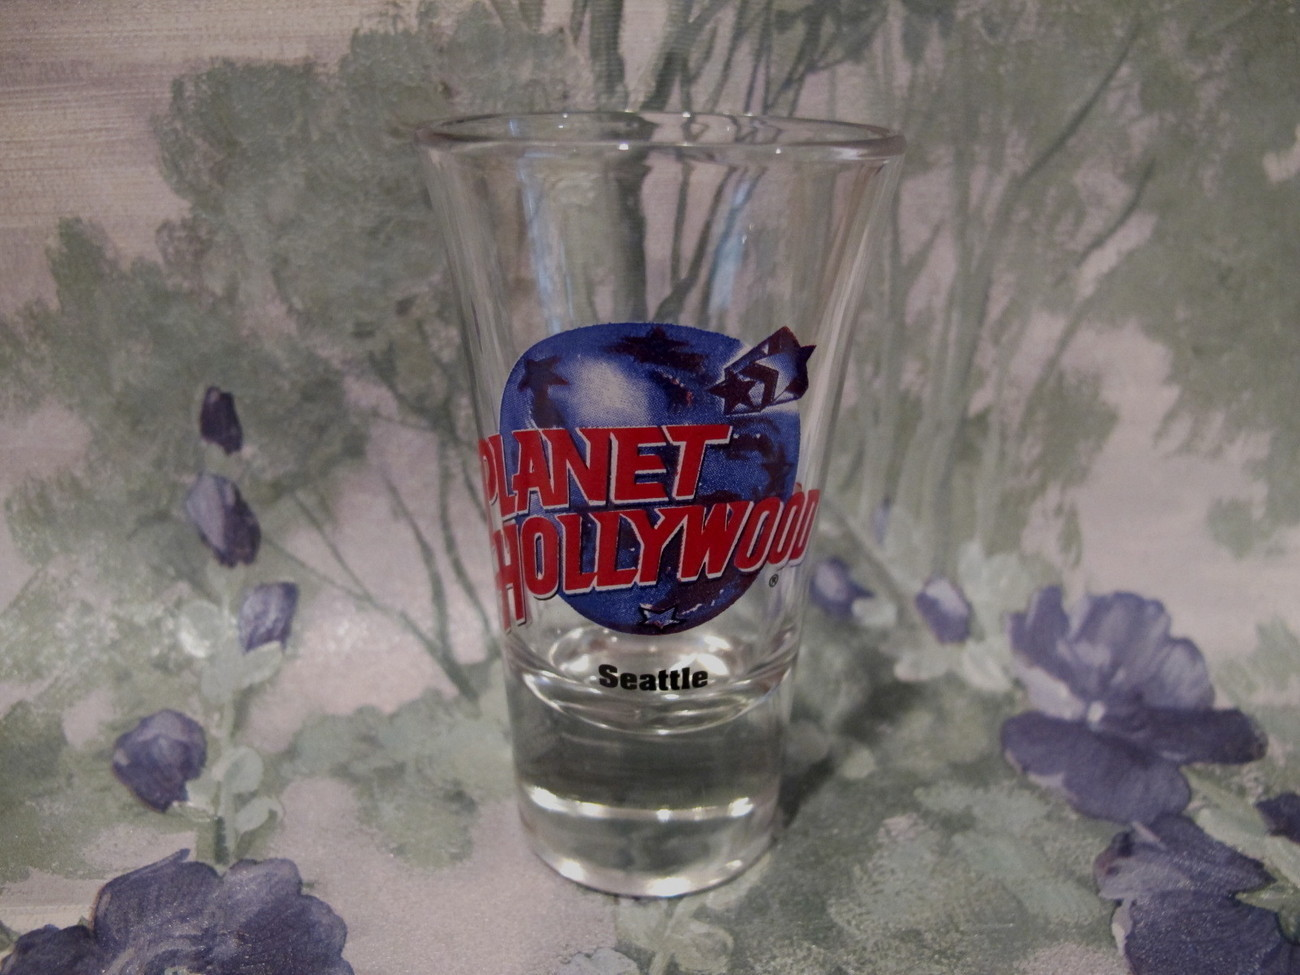 Primary image for Planet Hollywood Seattle Washington Shot Glass Souvenir Collectible Vintage